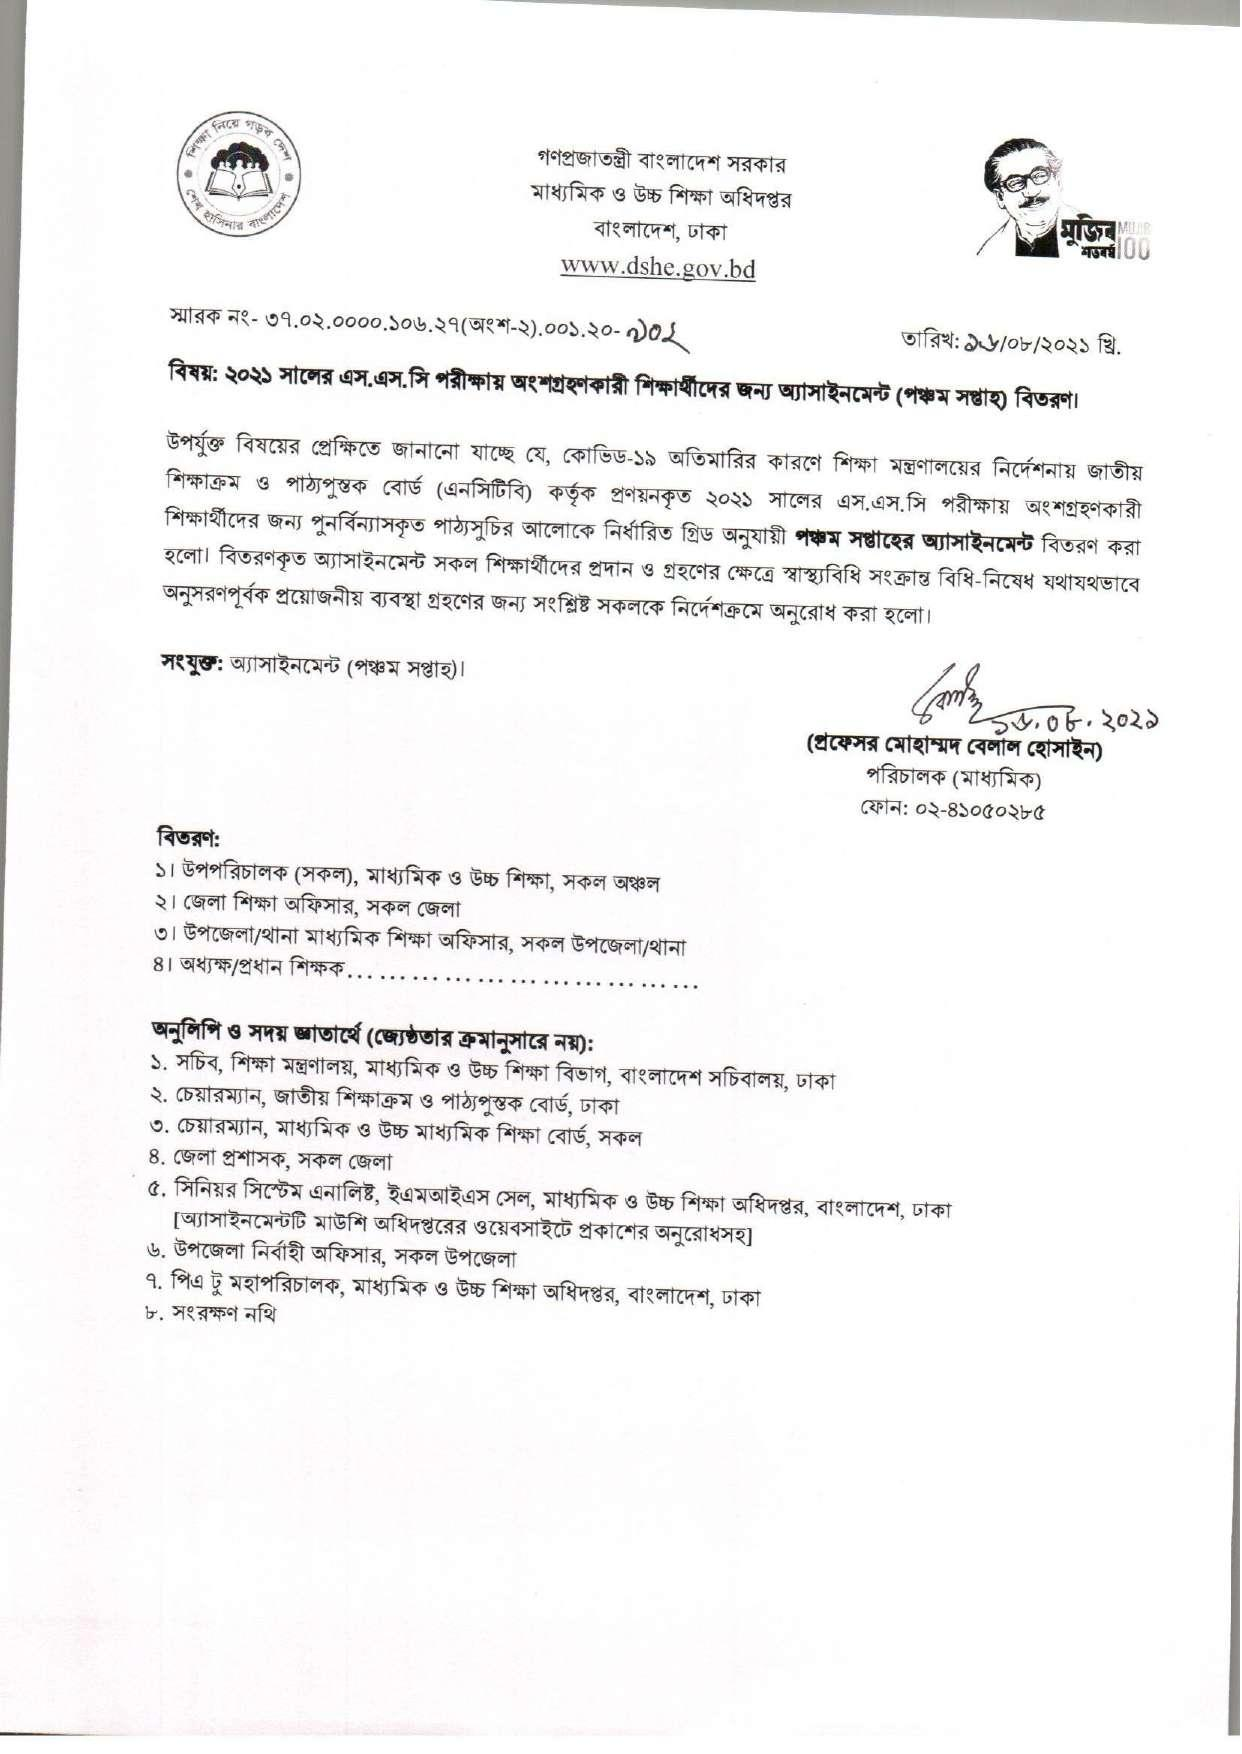 5th Week SSC Assignment 2021 Notice